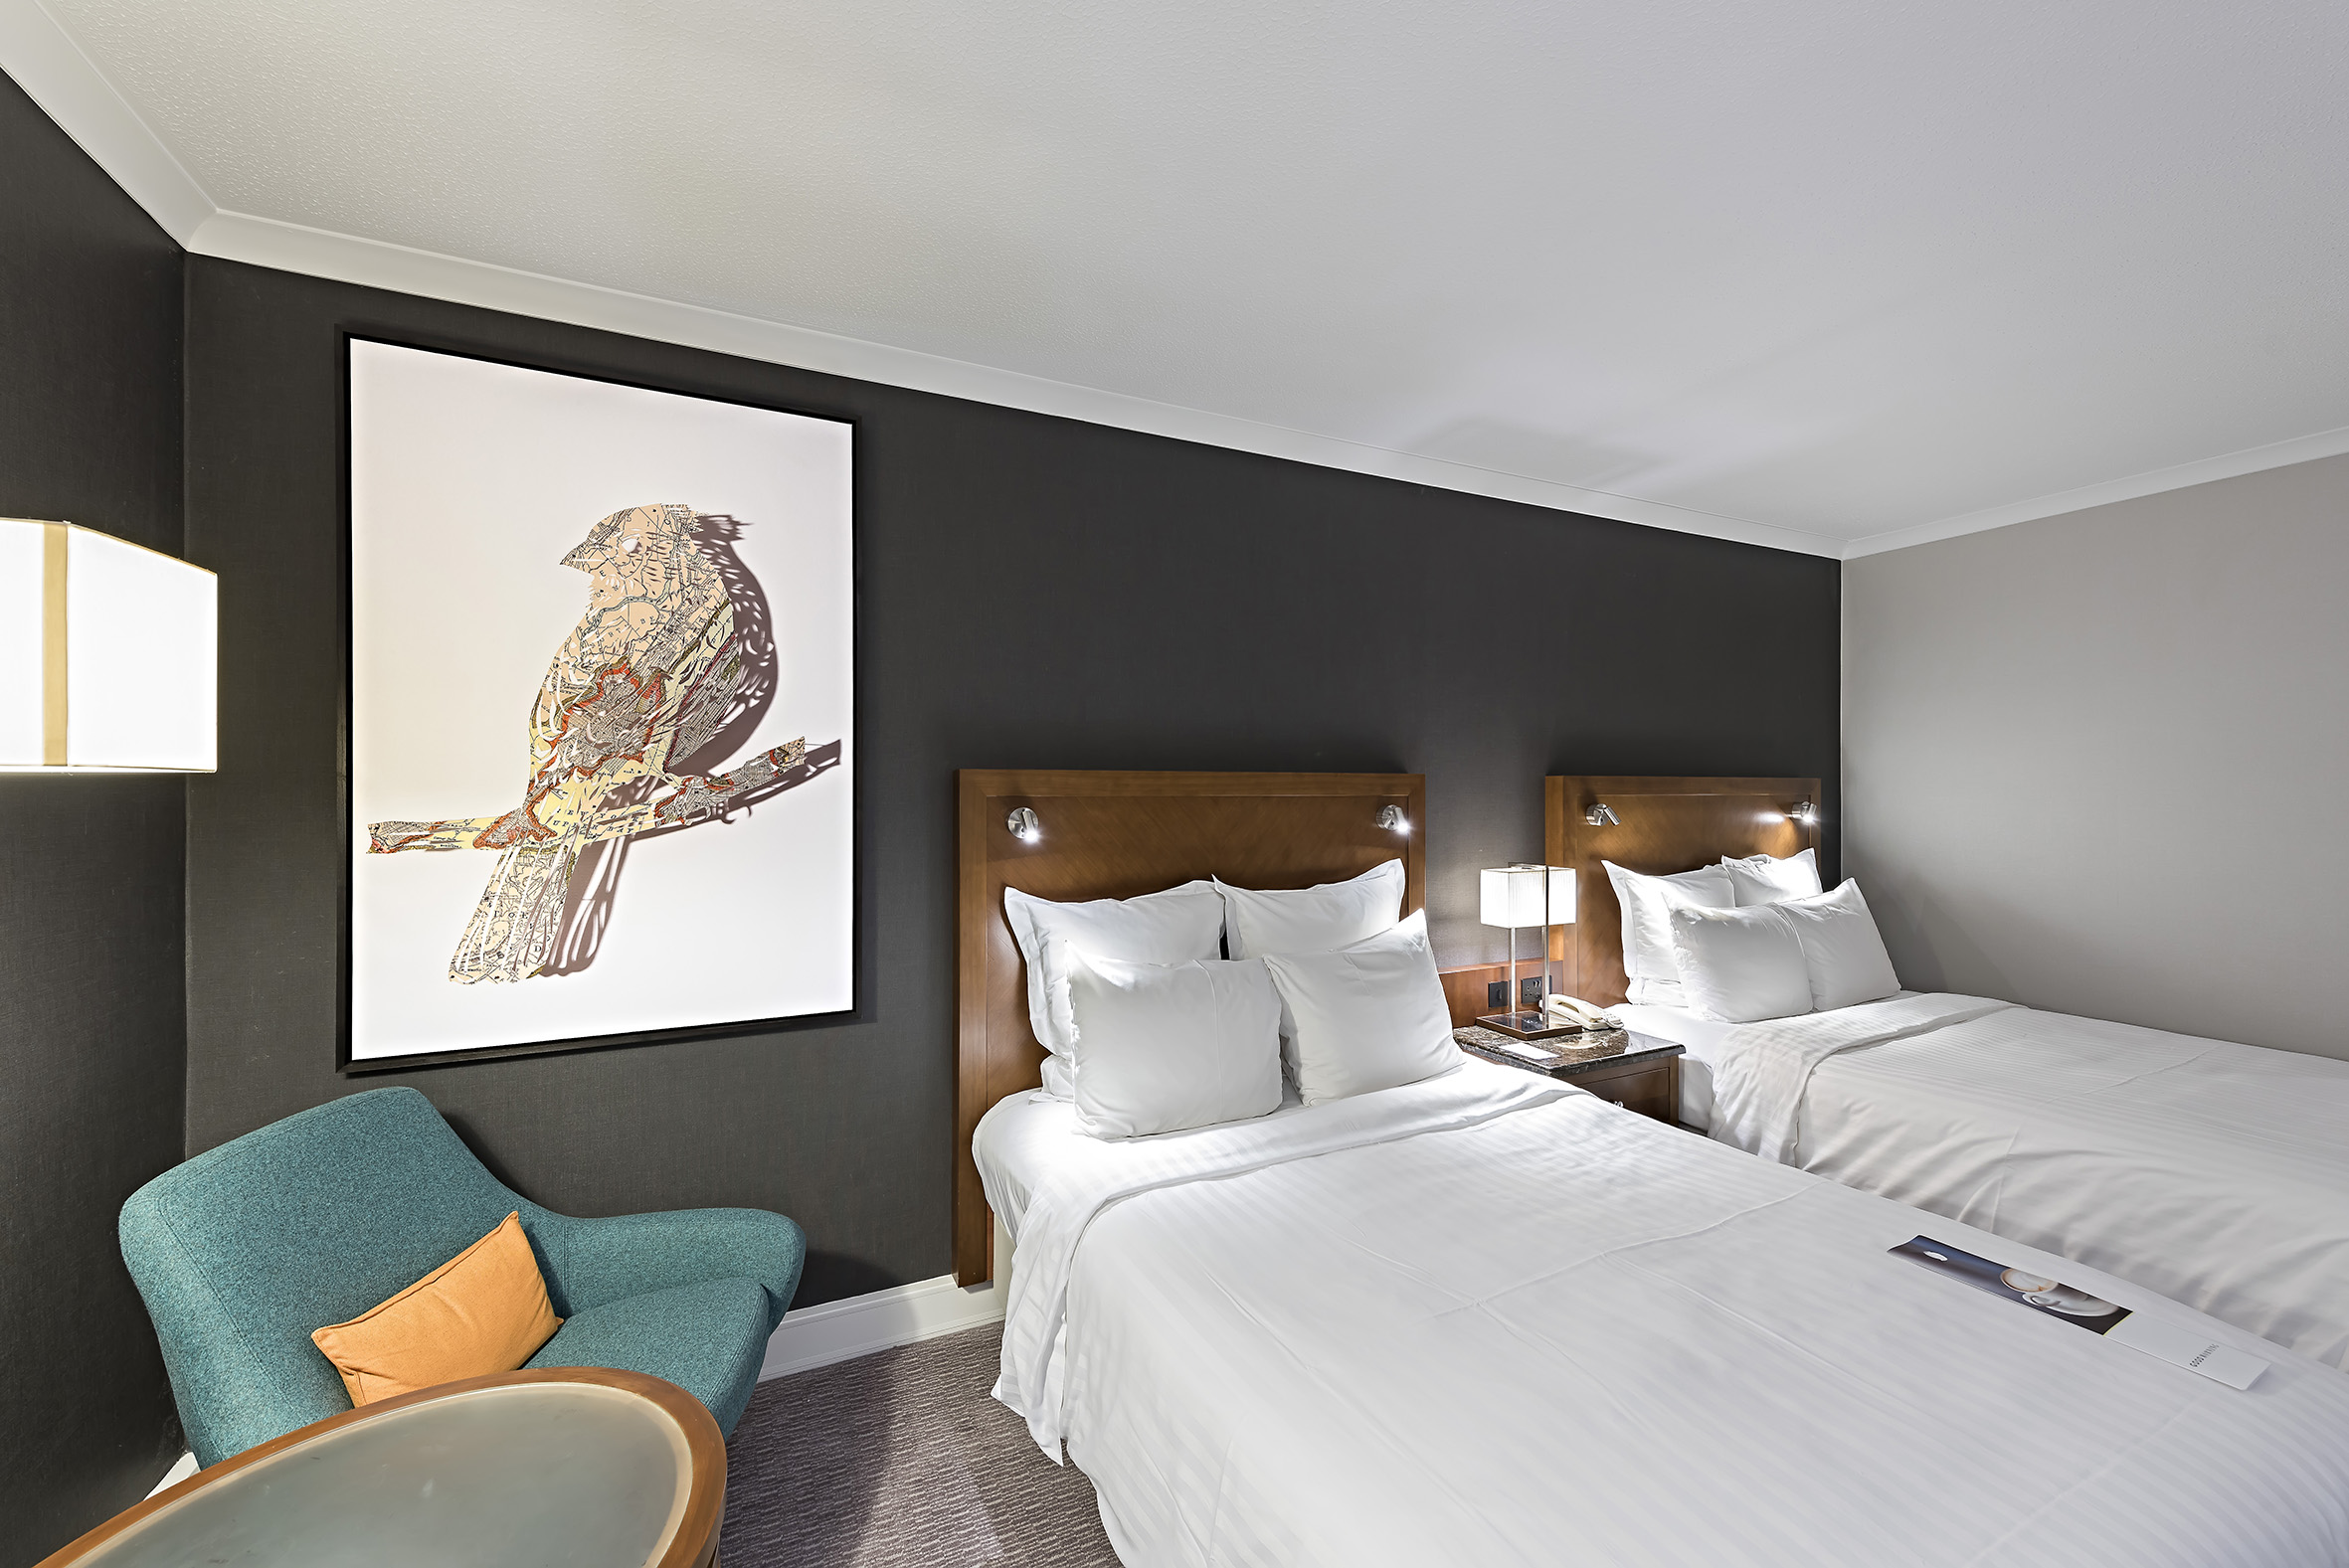 18  For the guestrooms, designed by Anita Rosato Interior Design, the art  is all by Claire Brewster